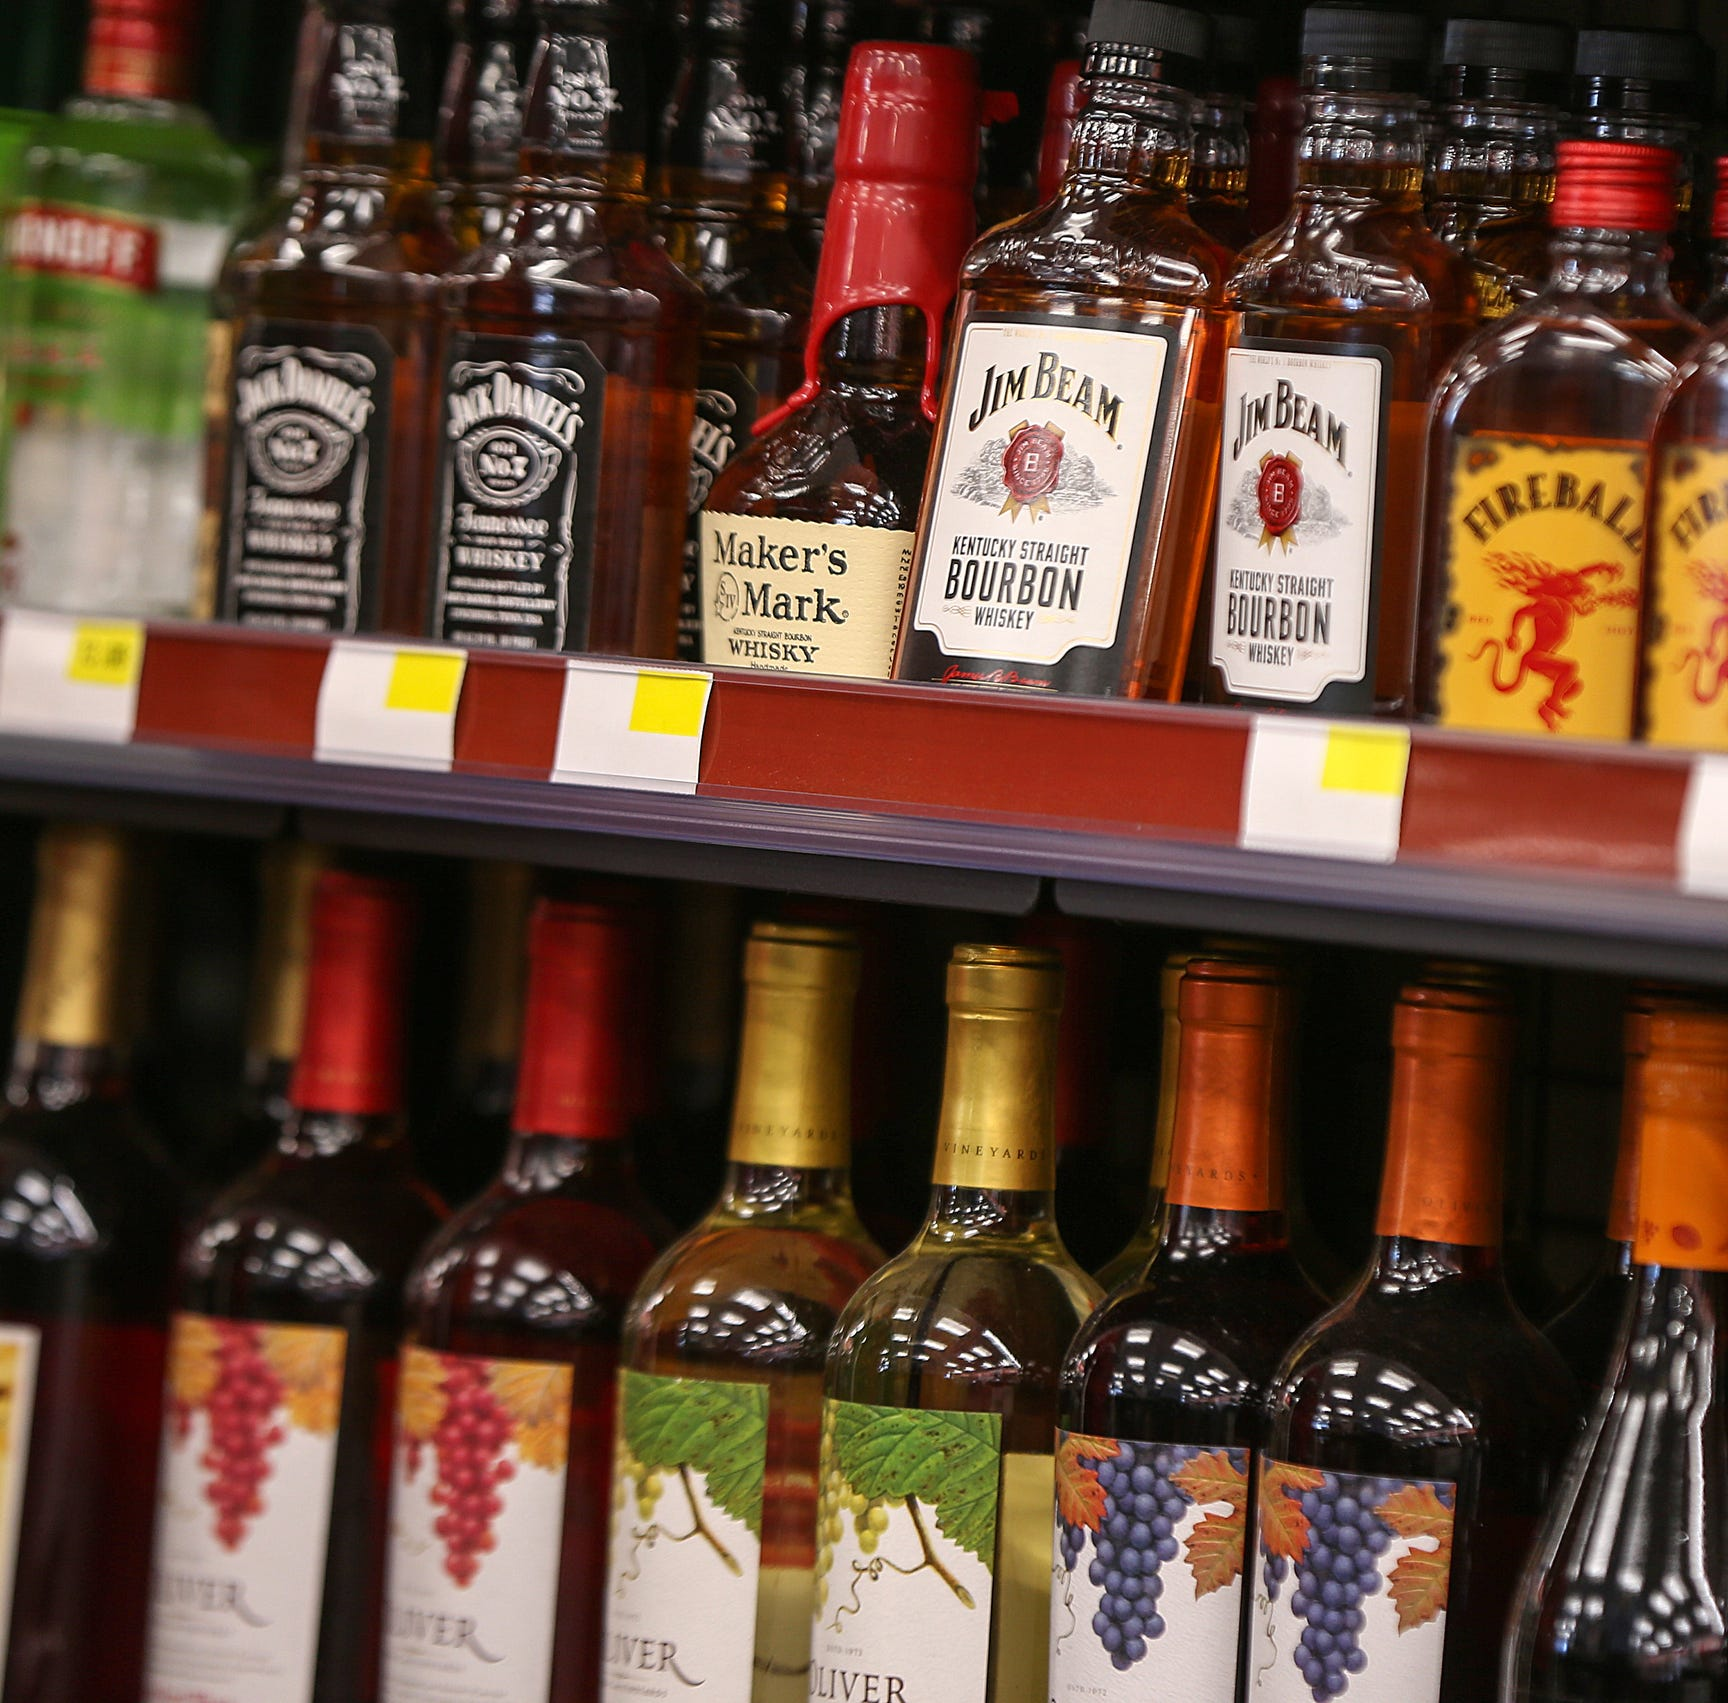 On a budget? These liquors are best bang for your buck